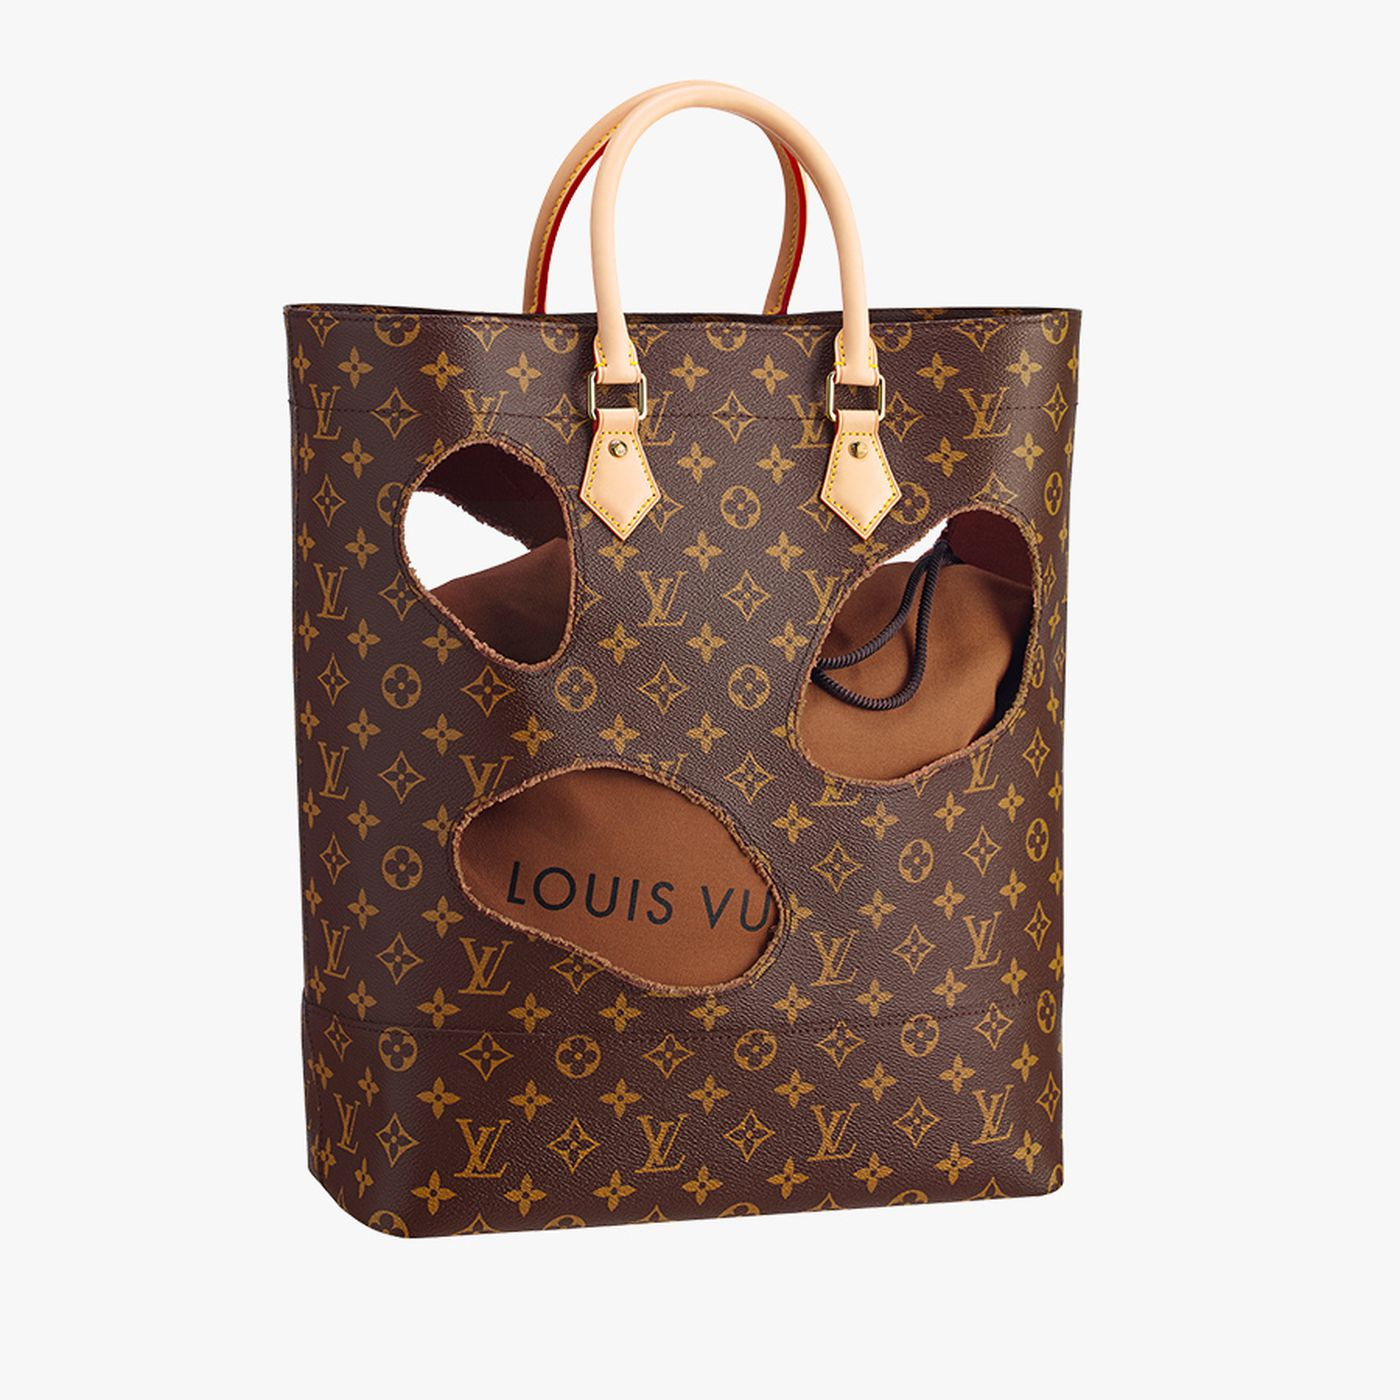 Louis Vuitton S 2 790 Bag With Very Large Holes Racked